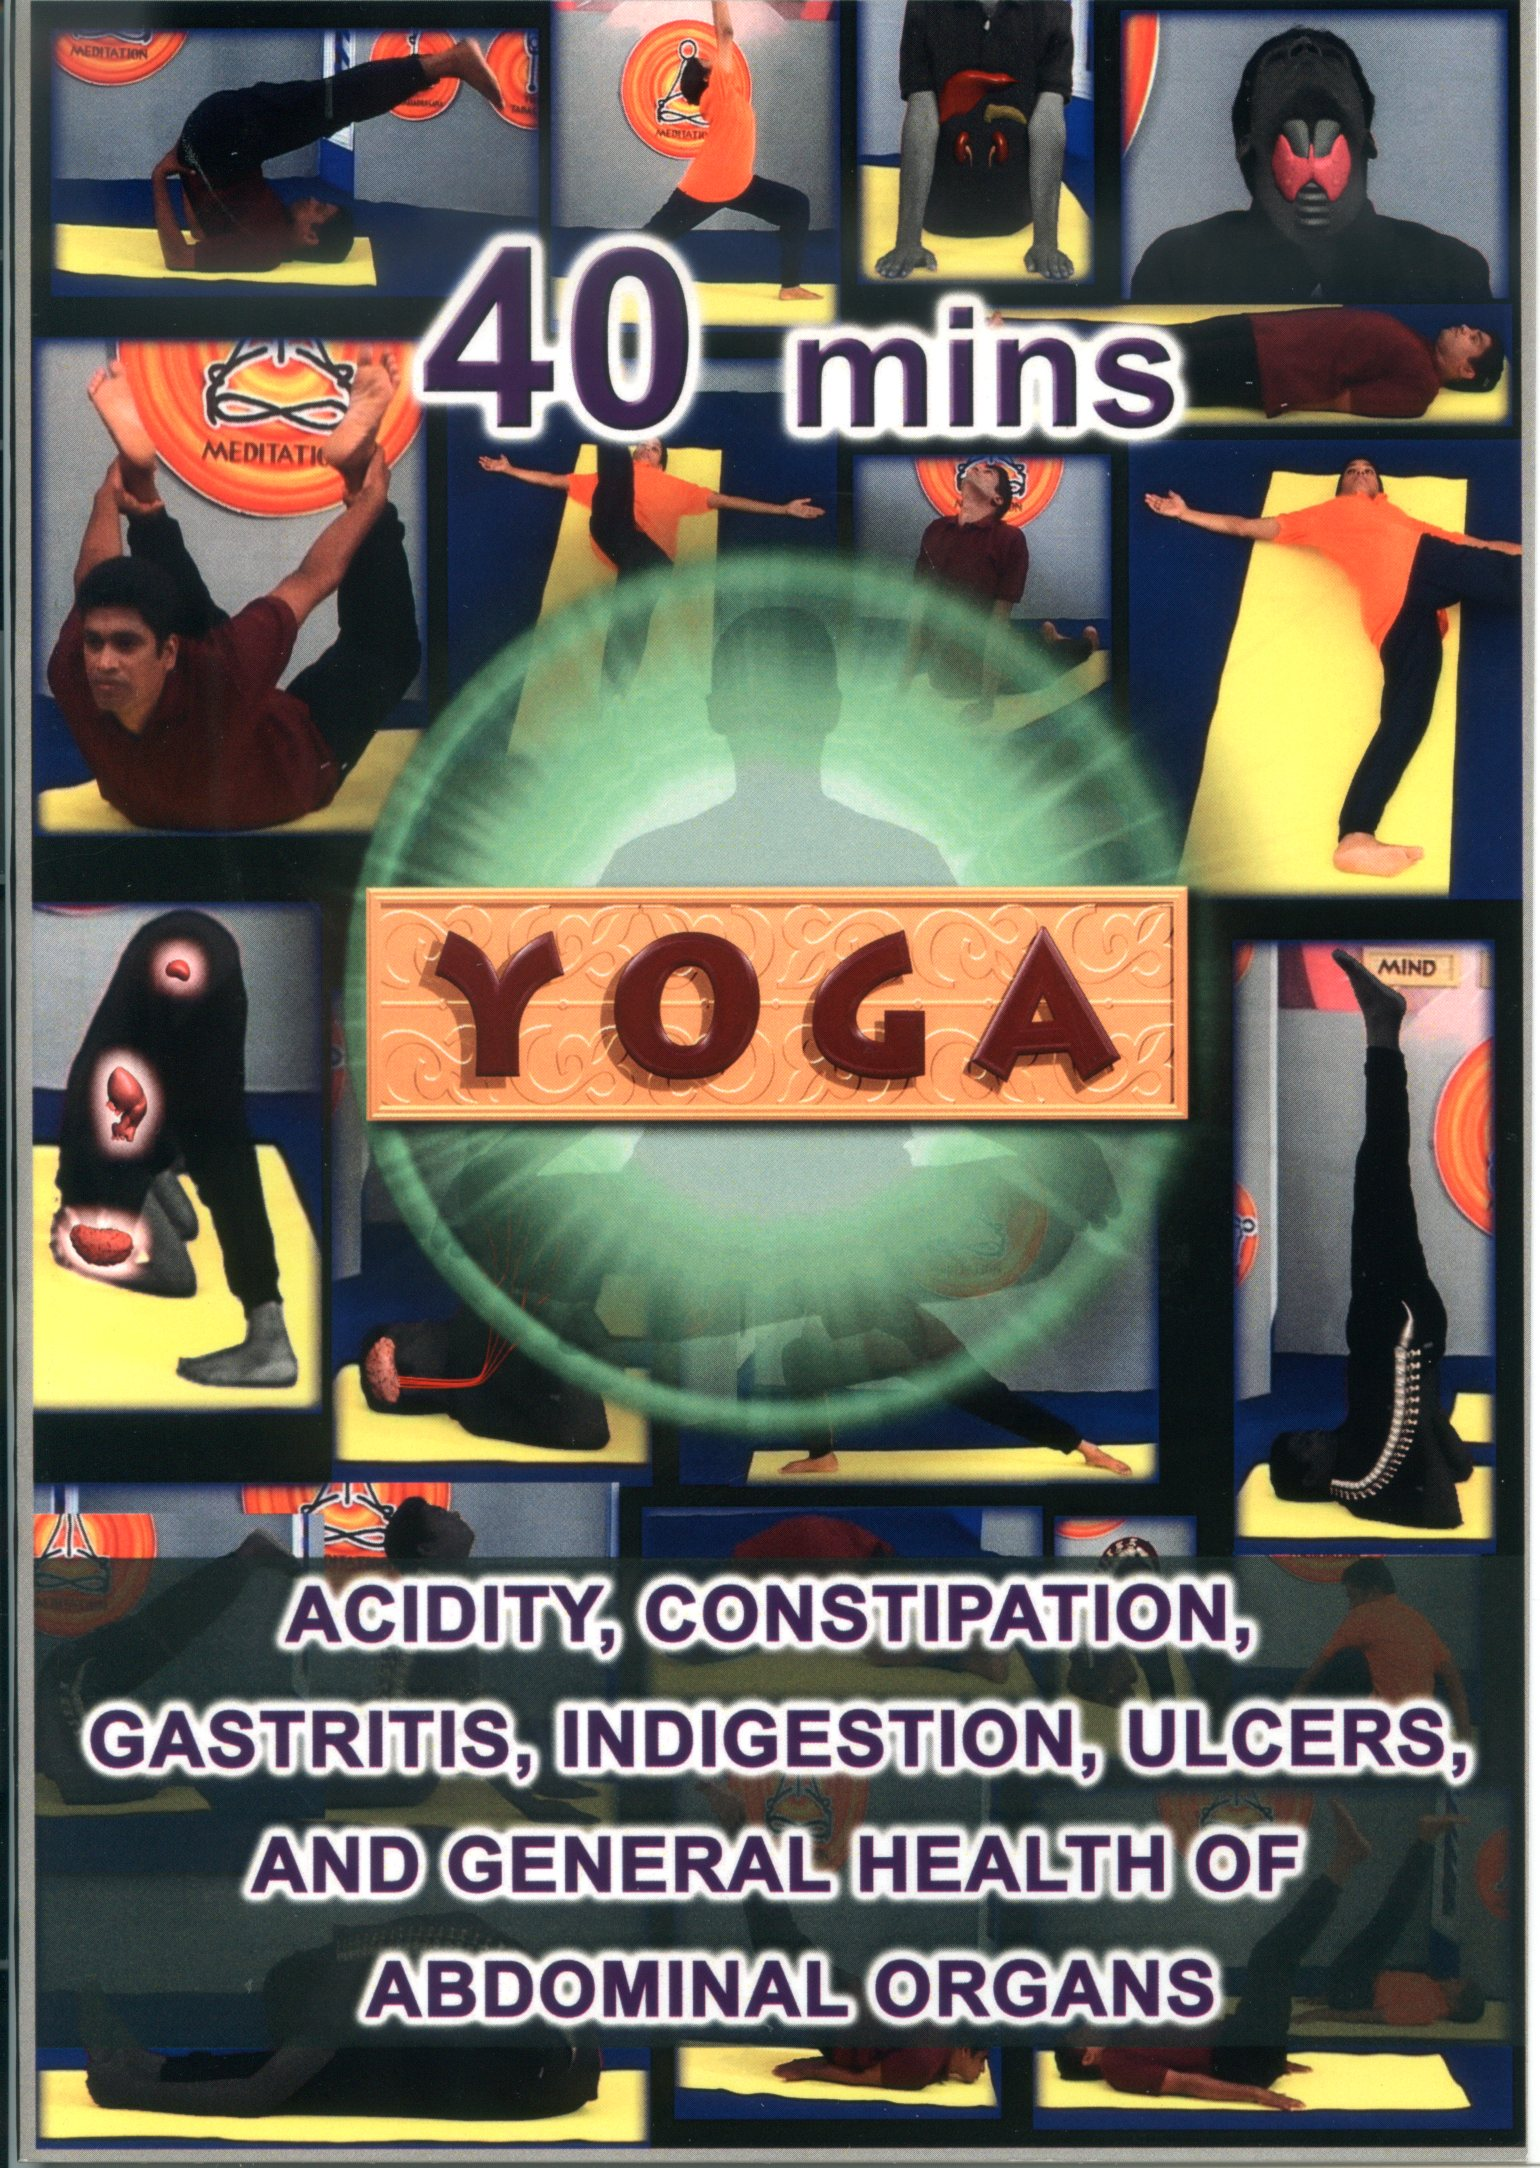 Yoga : acidity, constipation, gastritis, indigestion, ulcers, and general health of abdominal organs